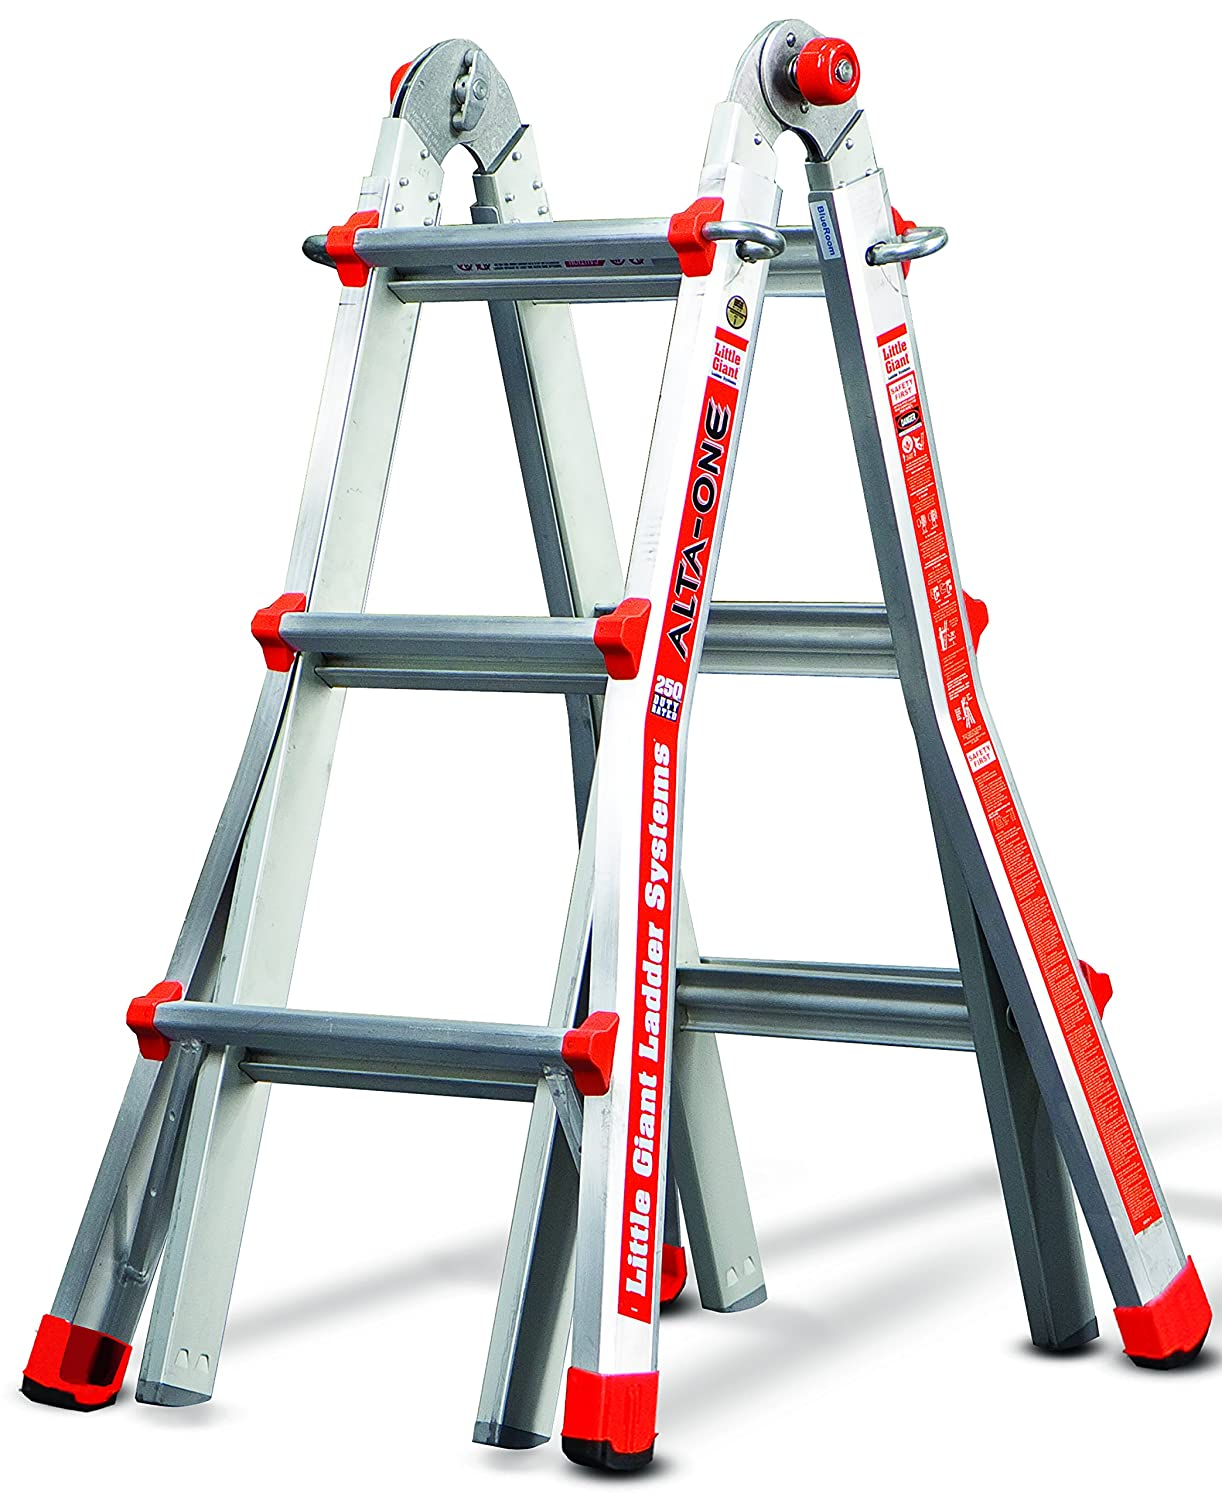 The Best Step Ladder Top 4 Reviewed In 2019 The Smart